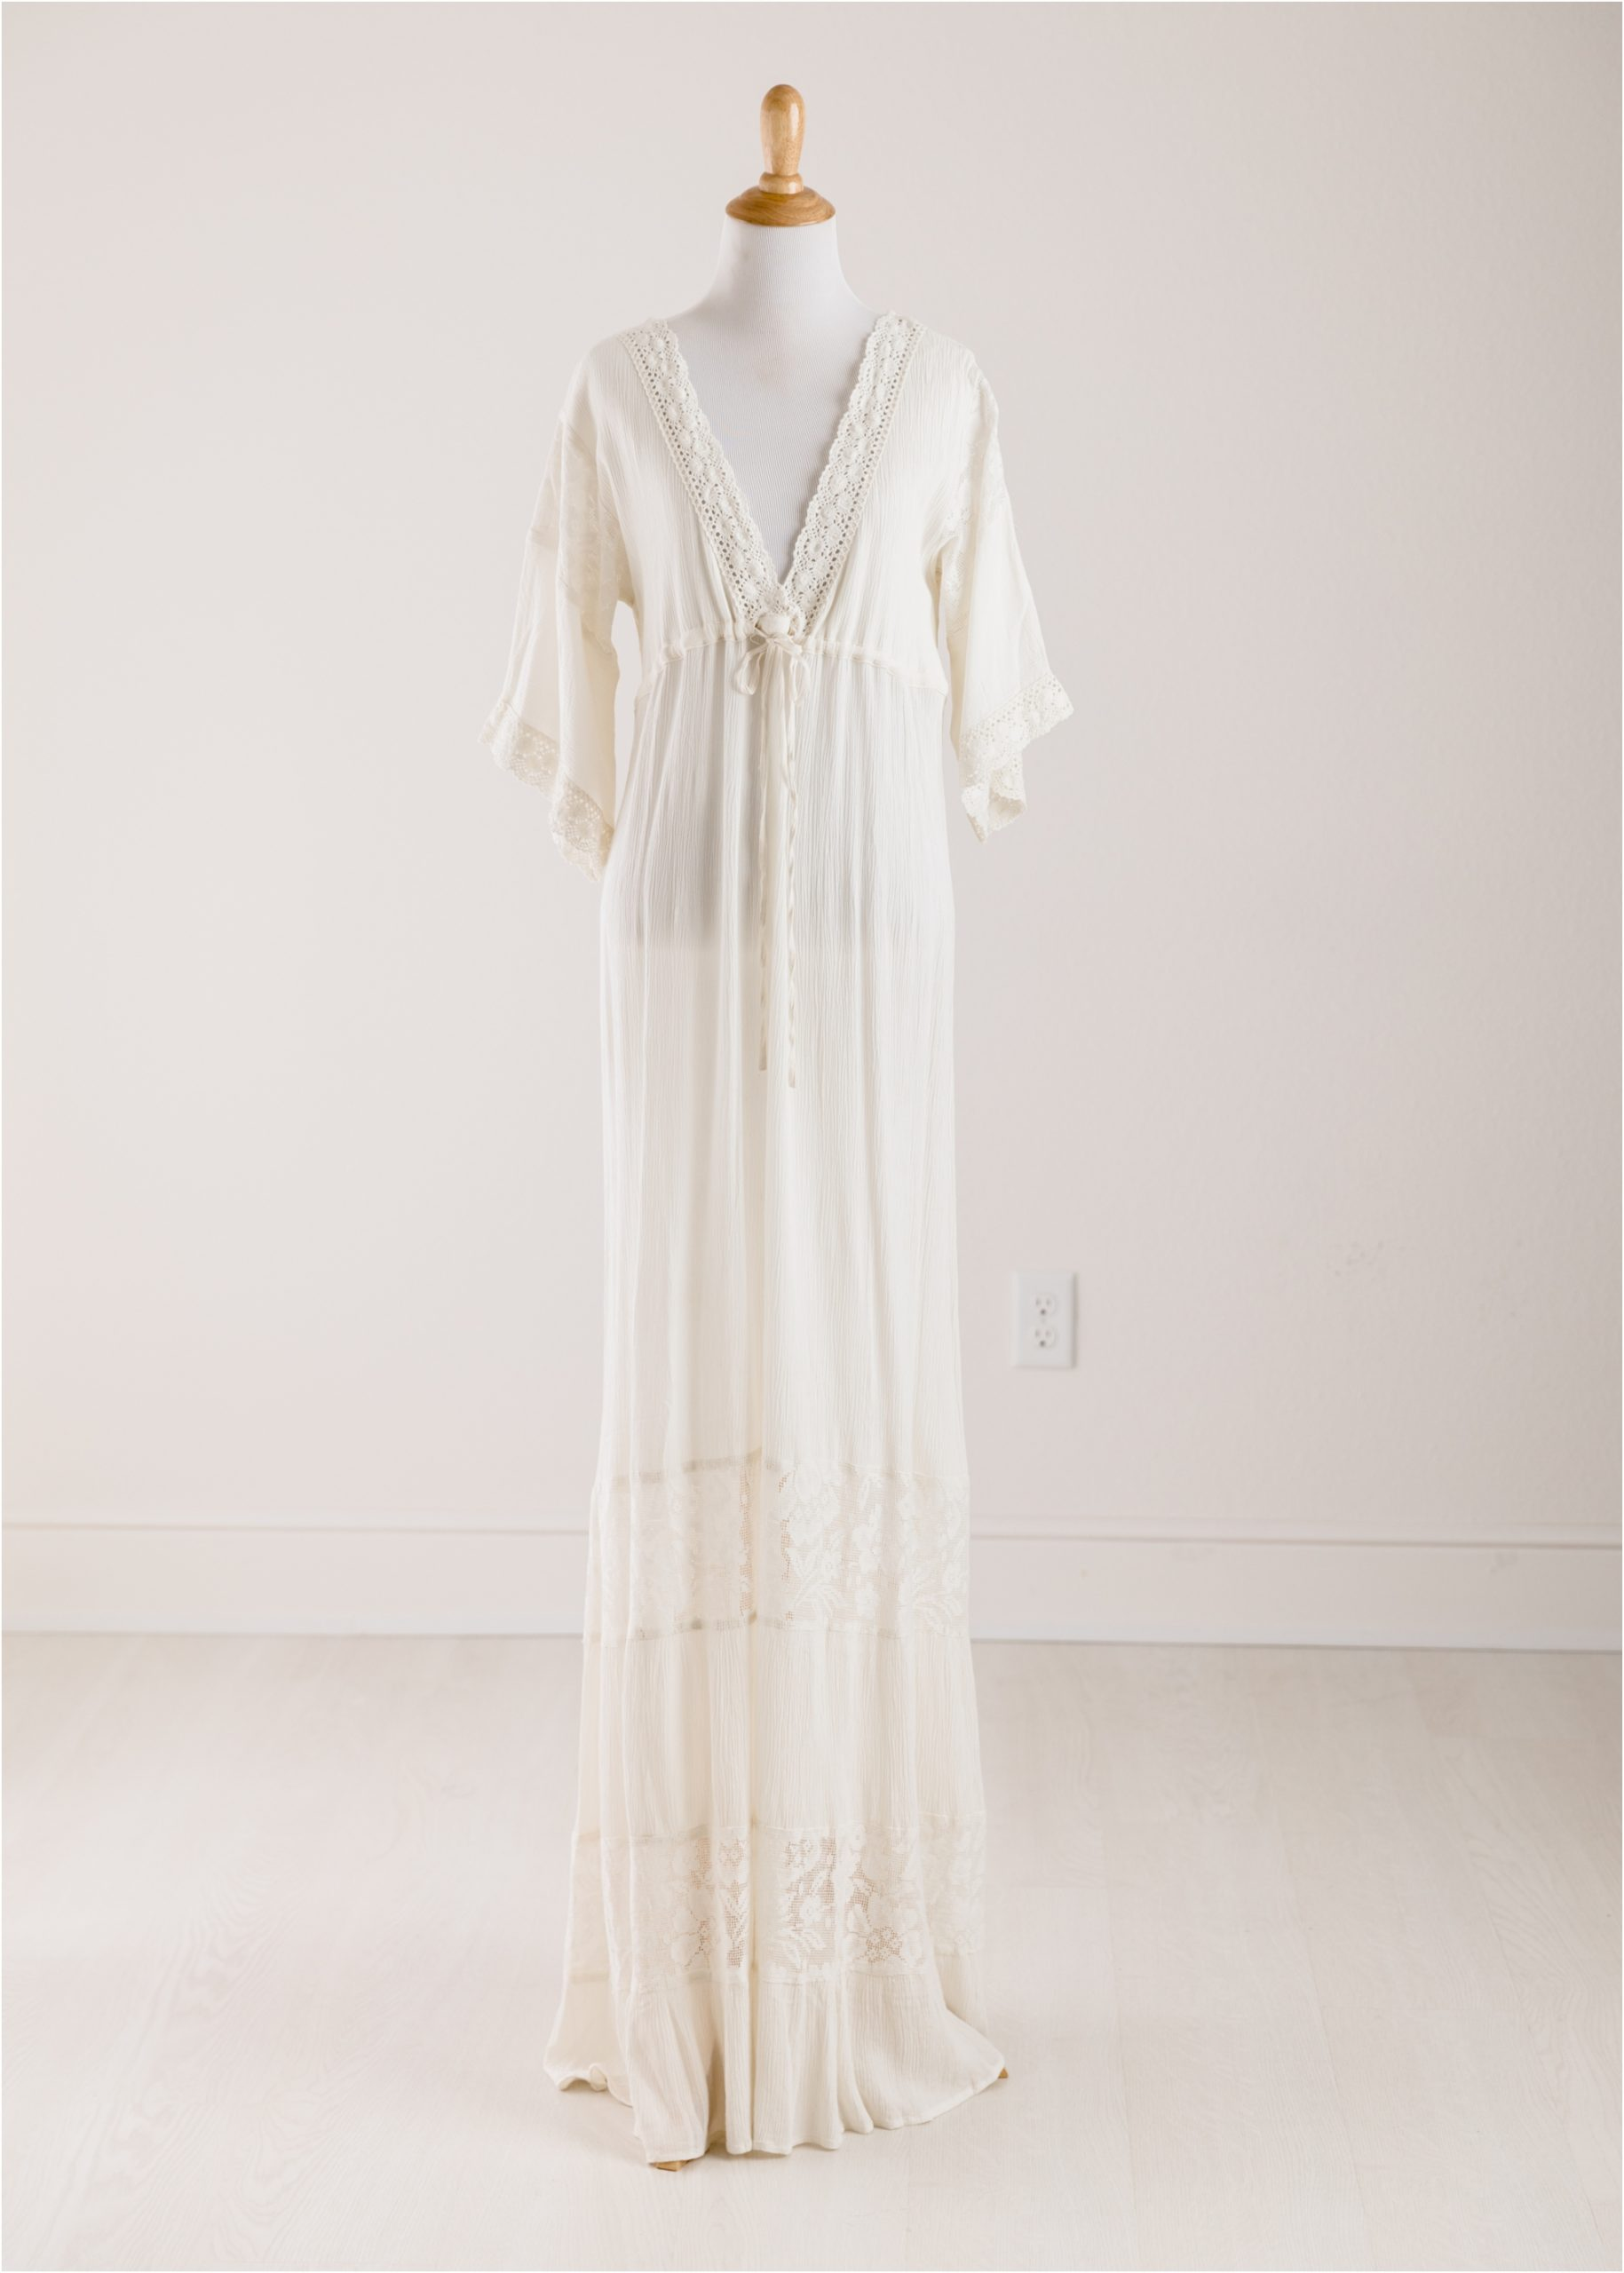 Off white boho maxi dress with lace provided by the Client Wardrobe of Houston TX photographer, Lifetime of Clicks Photography.